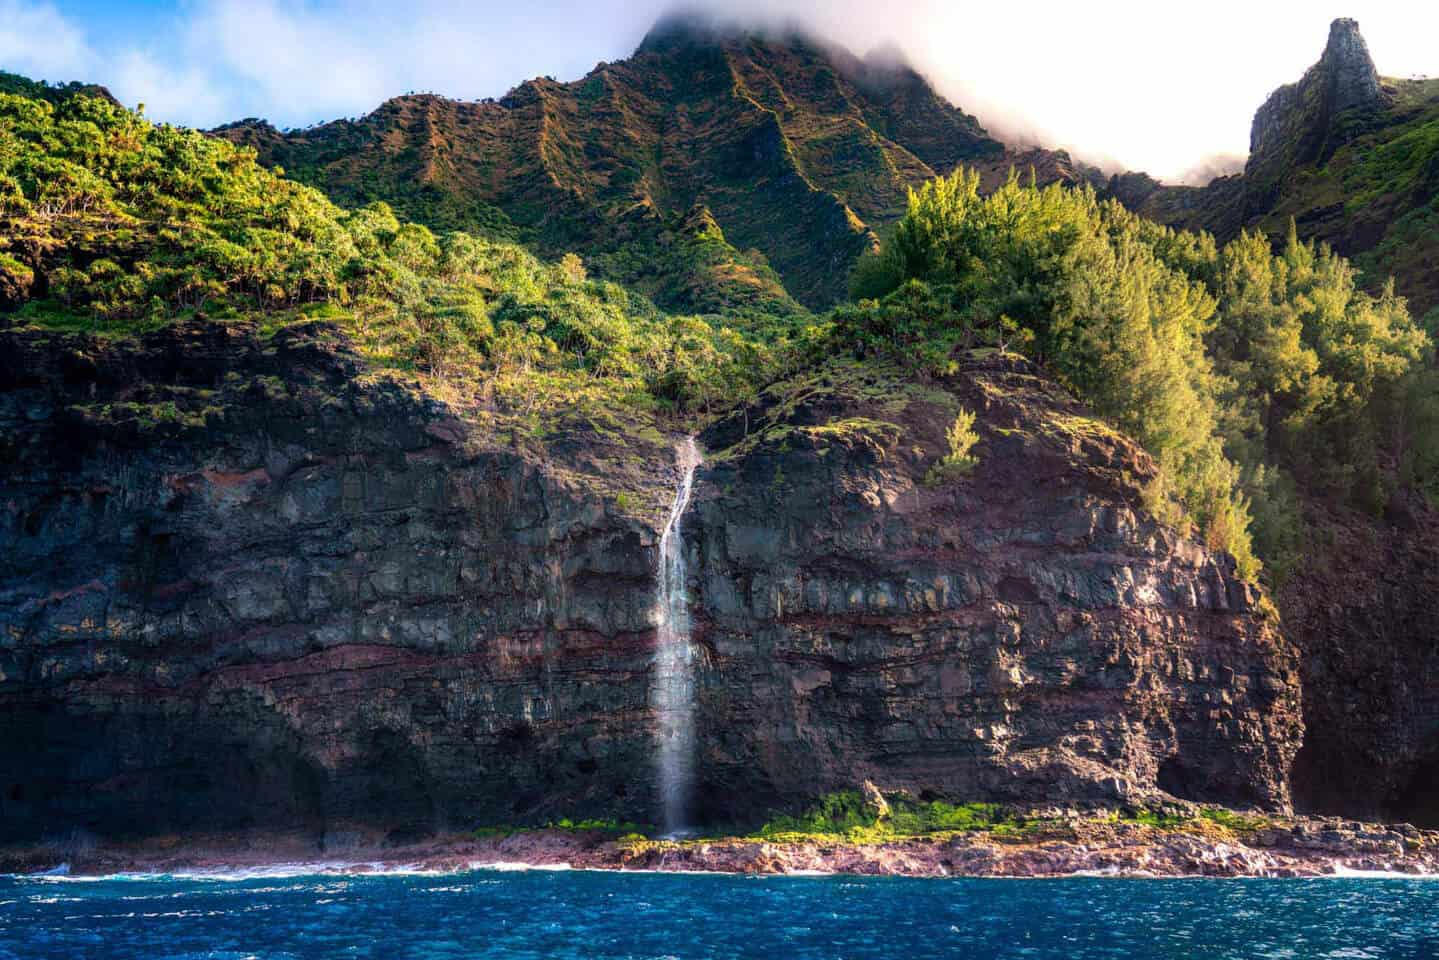 A waterfall spills from the cliffs of the Na Pali Coast on our Kauai itinerary.